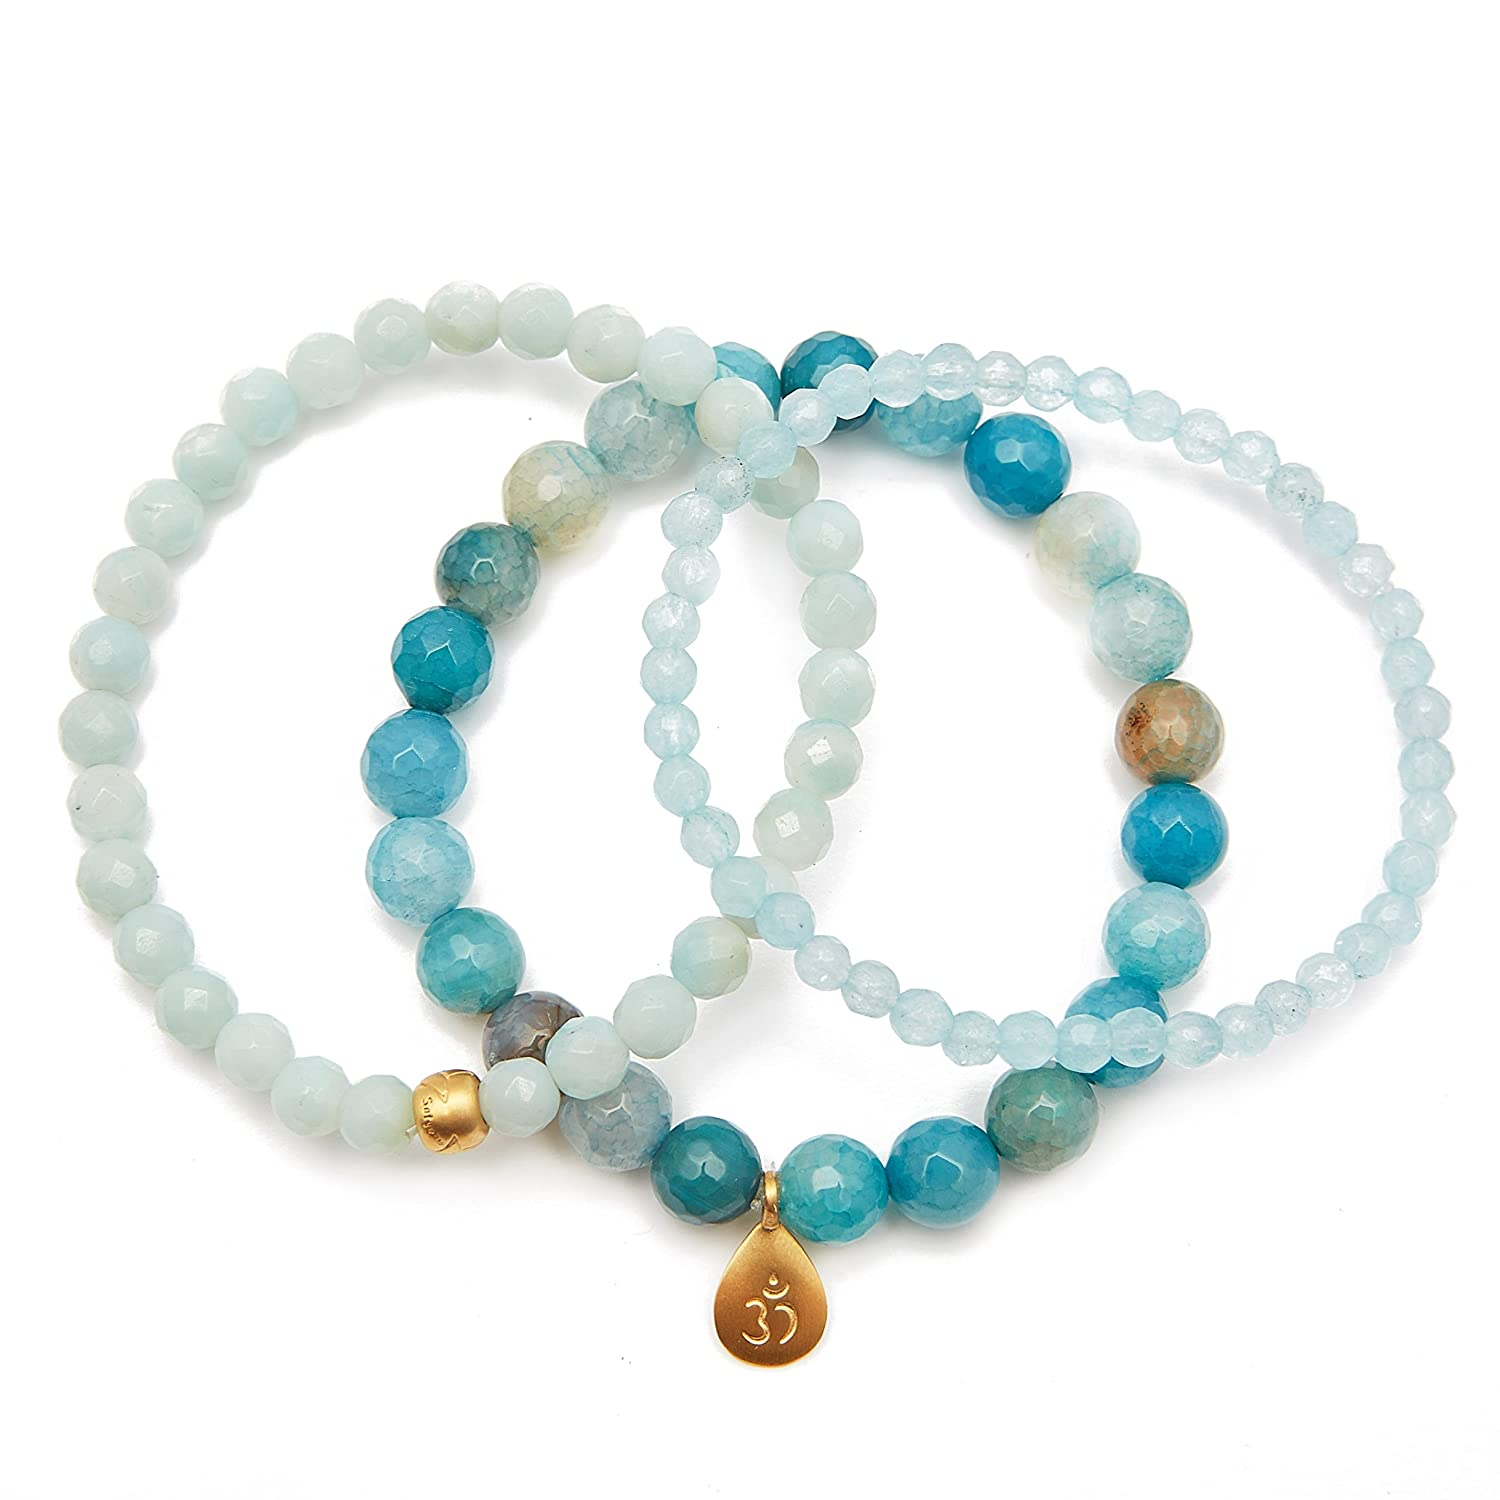 54a931dfd ... Satya Jewelry Womens Blue Agate and Angelite Gold Om Lotus Stretch  Bracelet Set, One Size